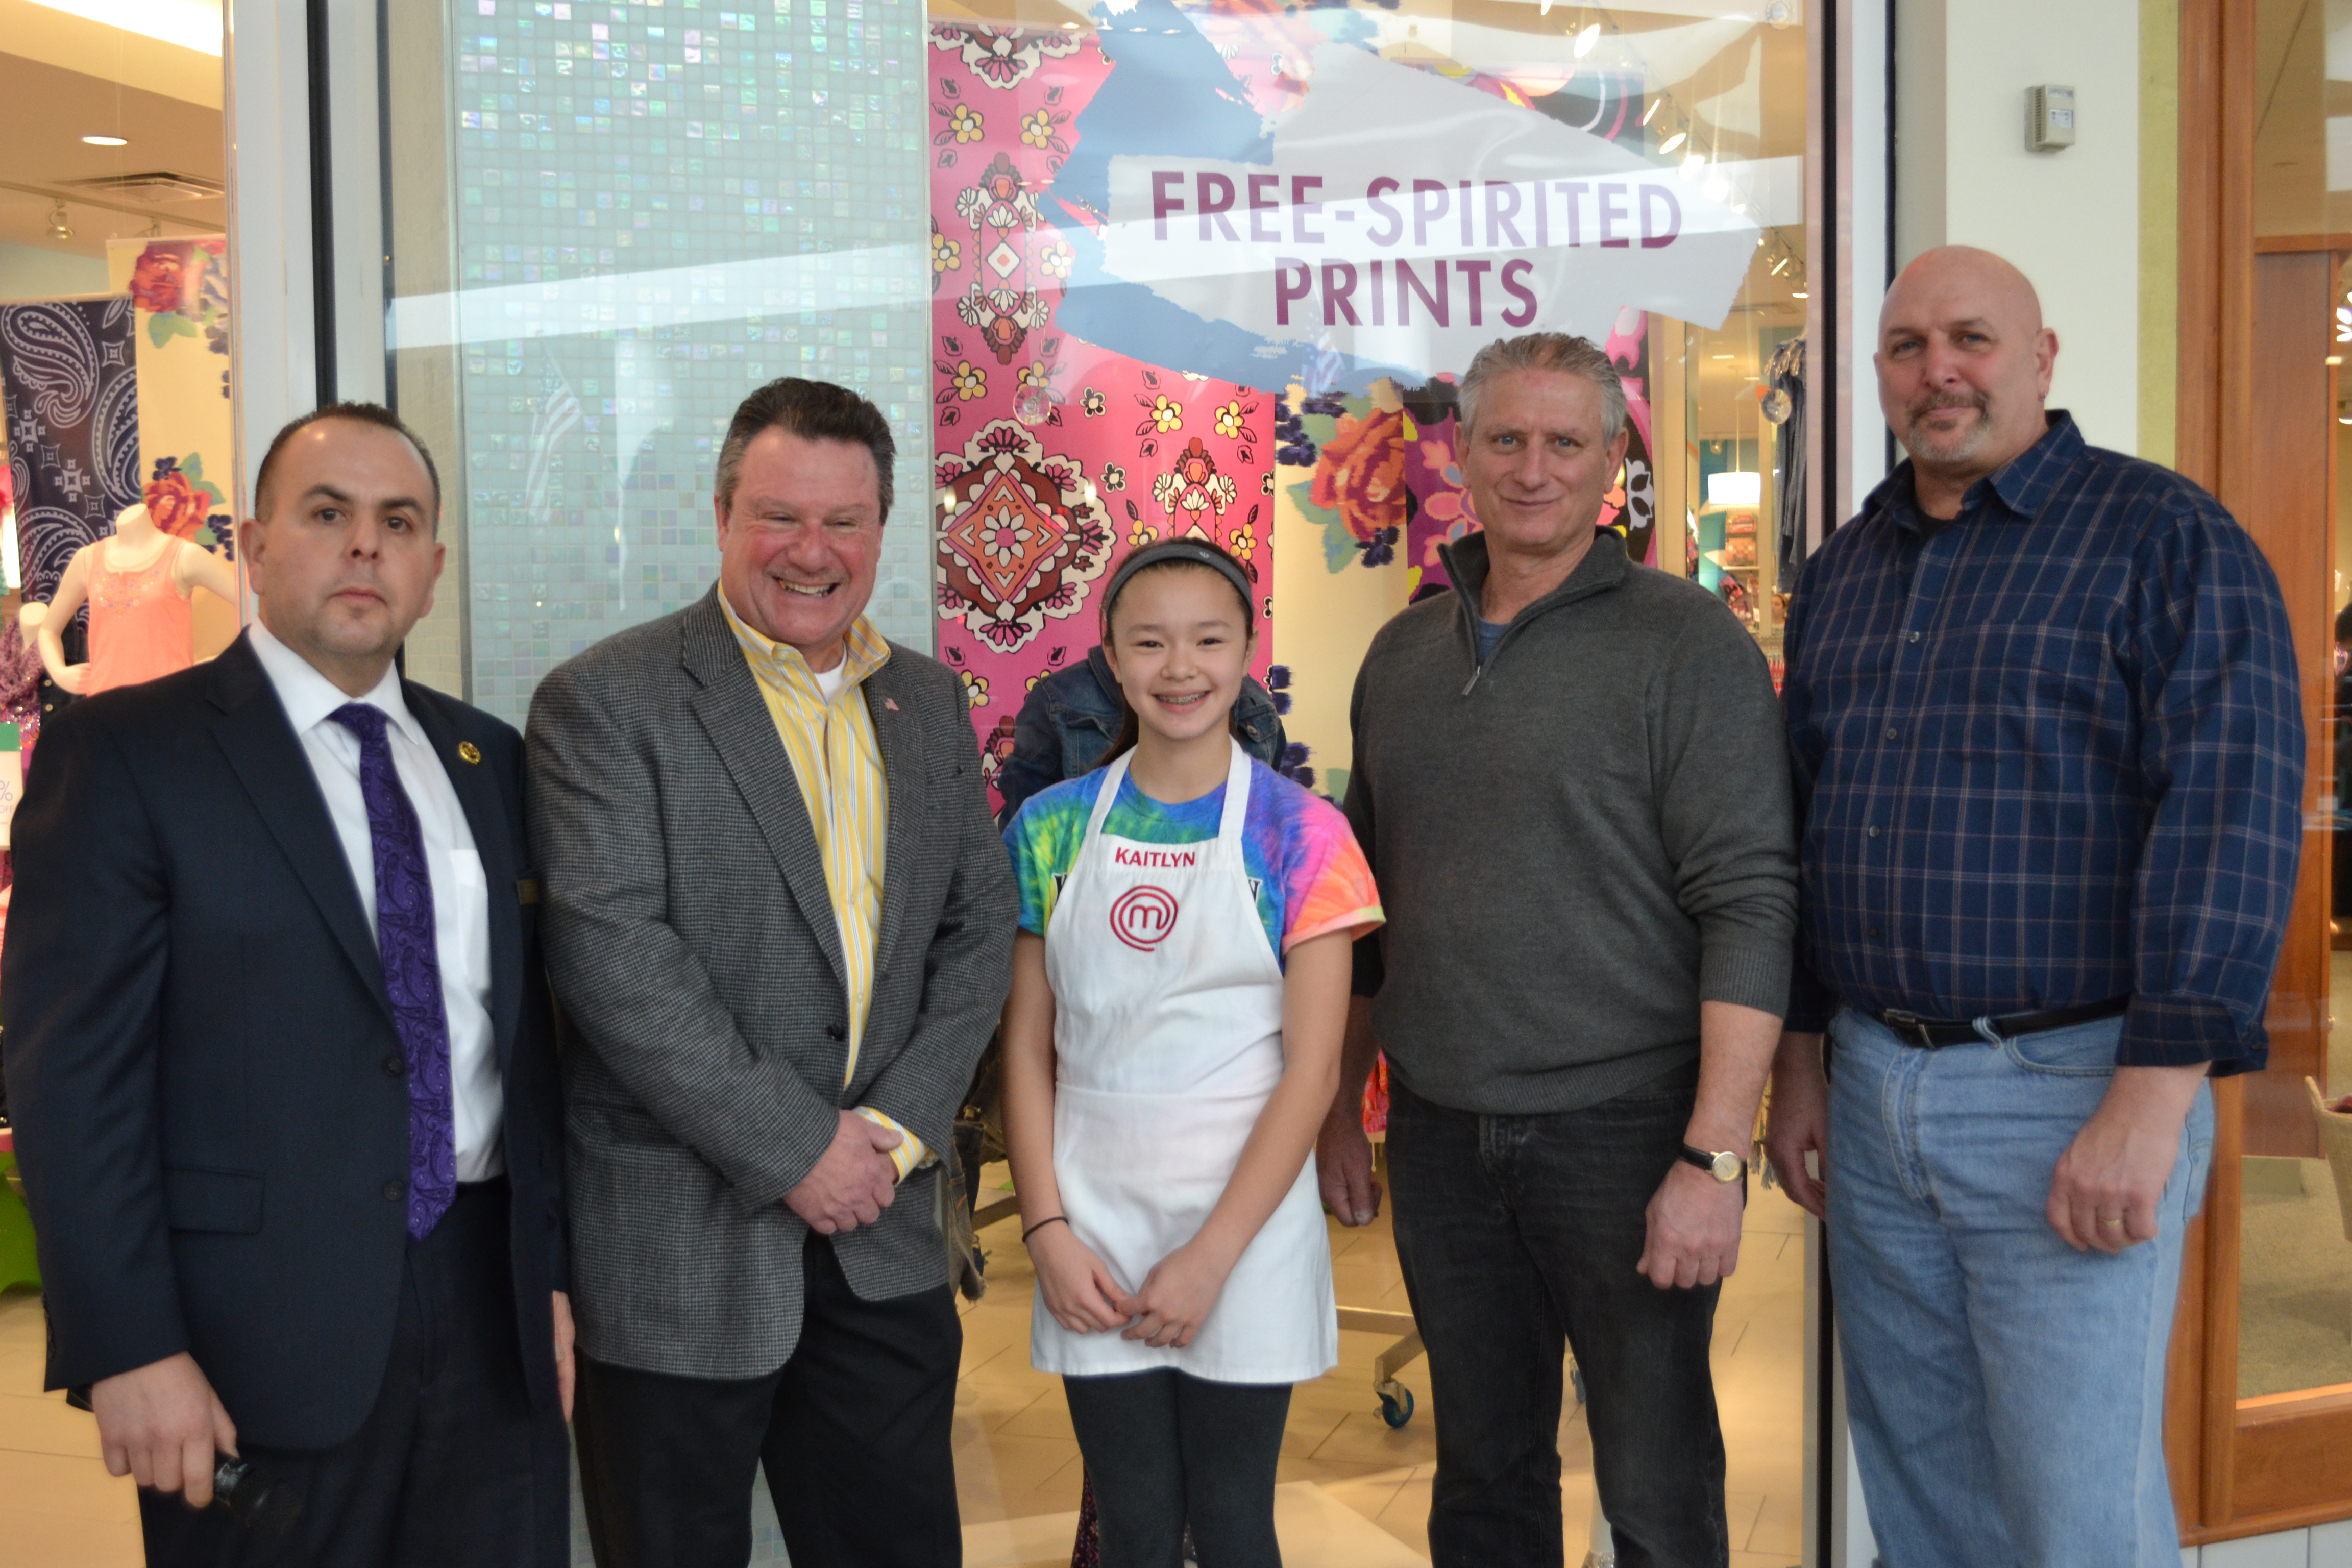 yorktown chamber hosts home expo soup cook off yorktown ny news tomeny middle stands dibartolo diana grace and bernard credits brian marschhauser